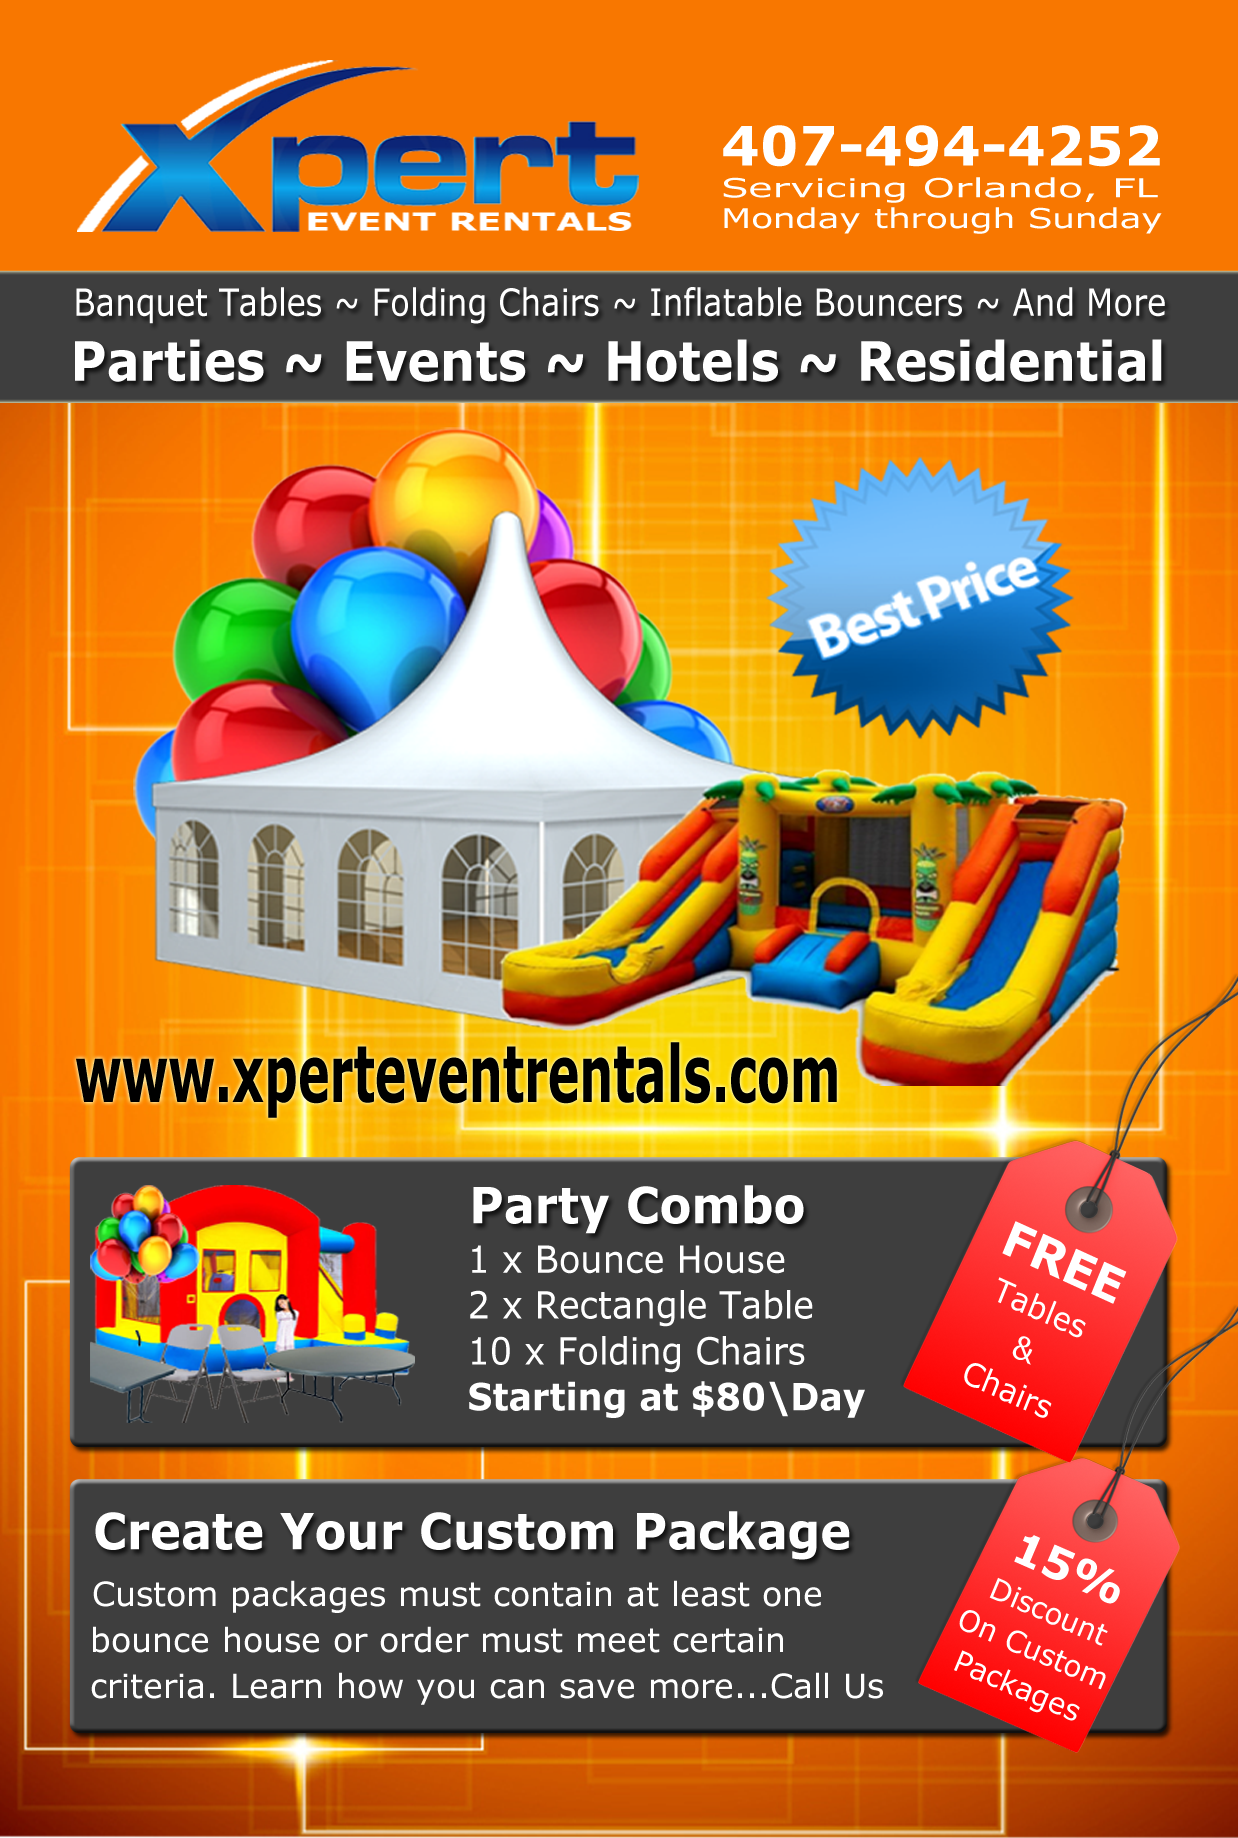 XPert Event Rentals Promotional ADs - License and Insures - Insured with Cossio Insurance Agency